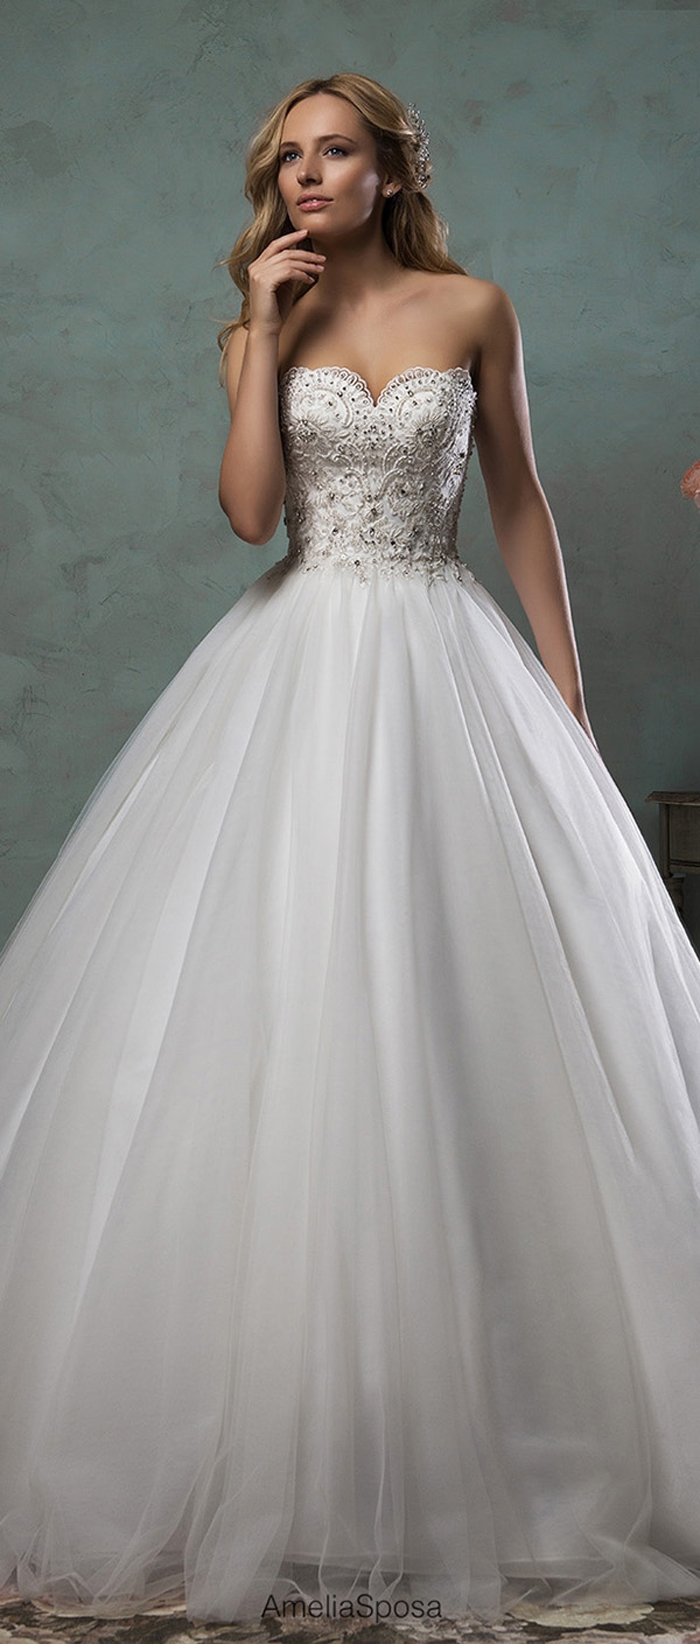 25 Spectacular & Sparkly Wedding Dresses - Modern Wedding